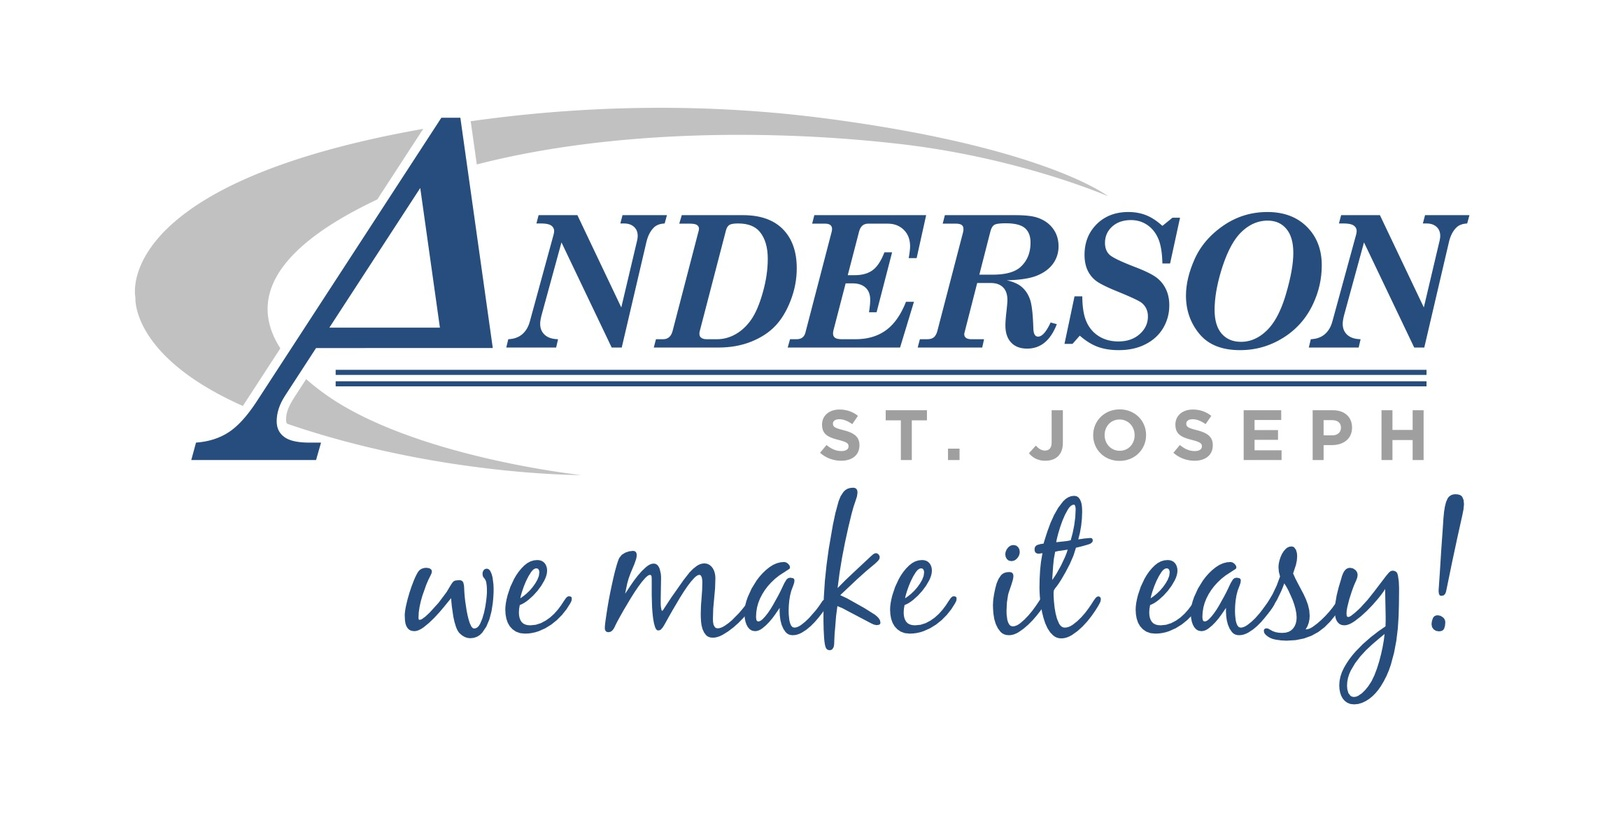 Anderson ford lincoln of st joseph saint joseph mo read consumer reviews browse used and new cars for sale